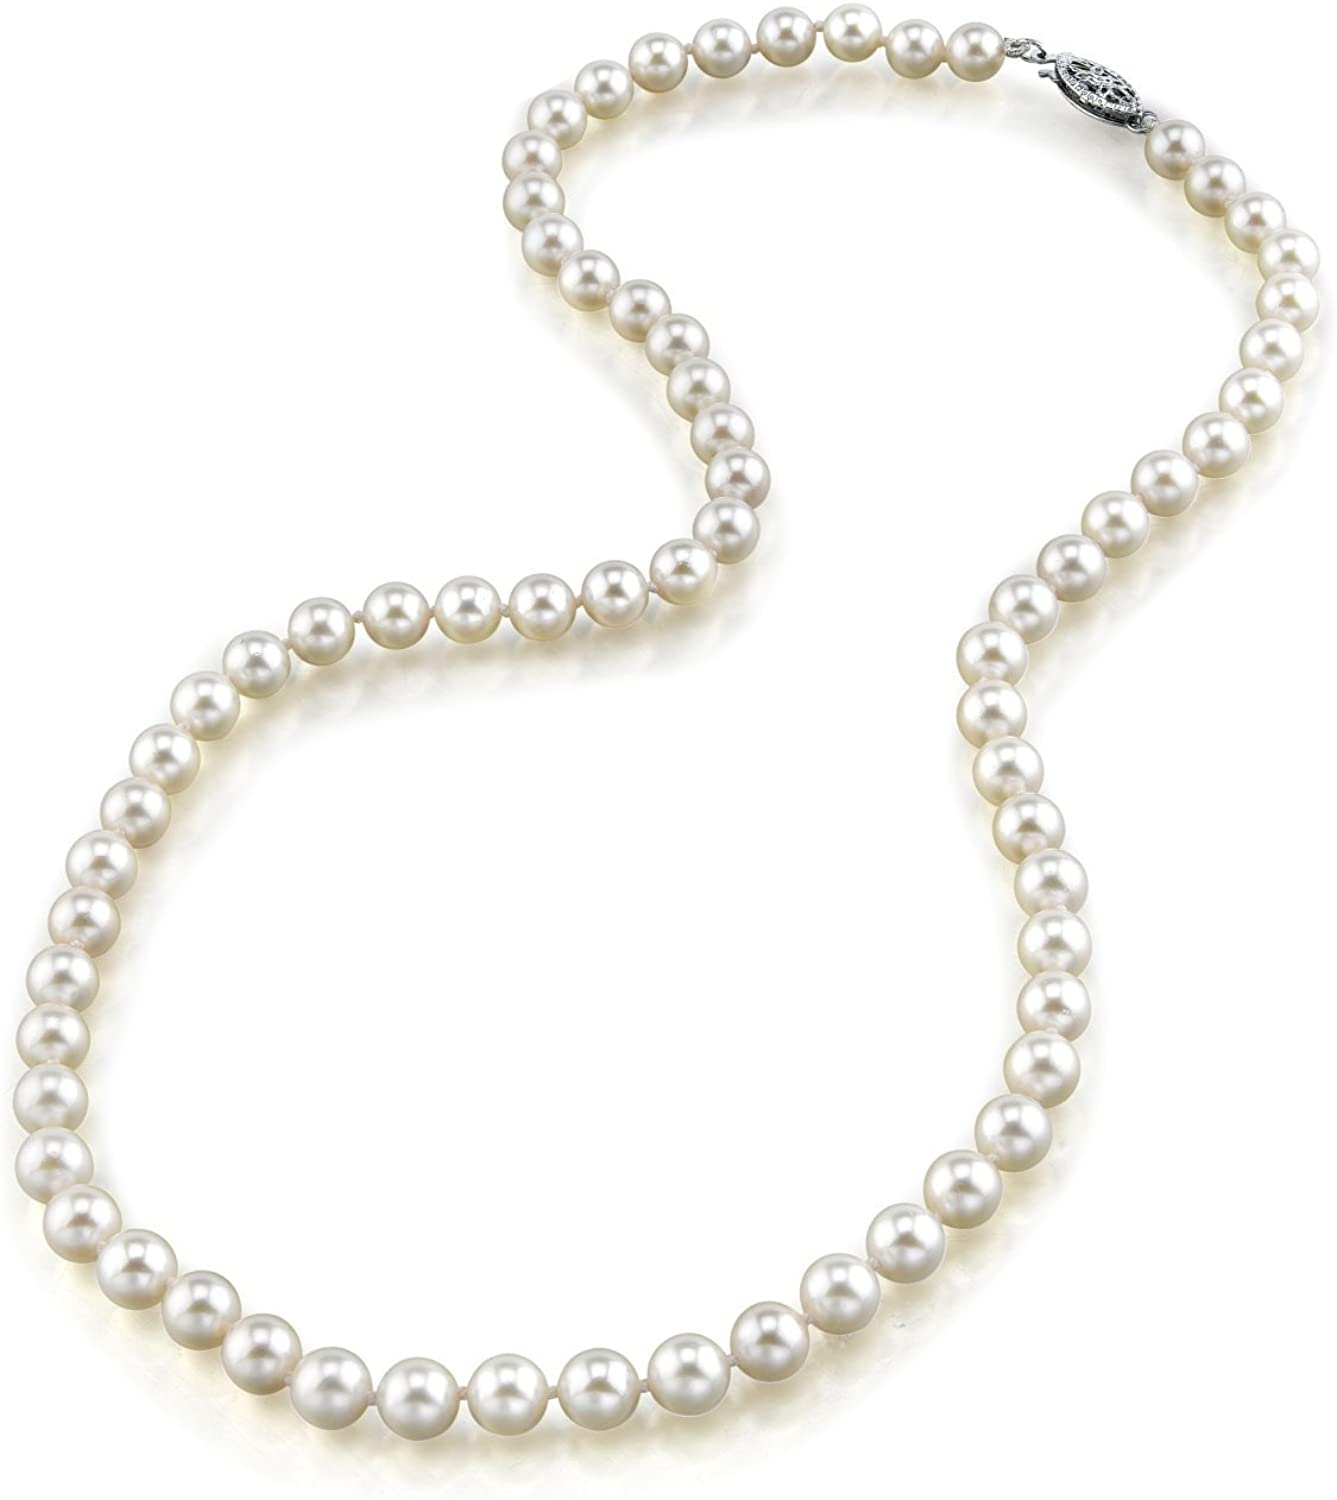 THE PEARL SOURCE 14K Gold 4.0-4.5mm AAA Quality Round Genuine White Japanese Akoya Saltwater Cultured Pearl Necklace in 17